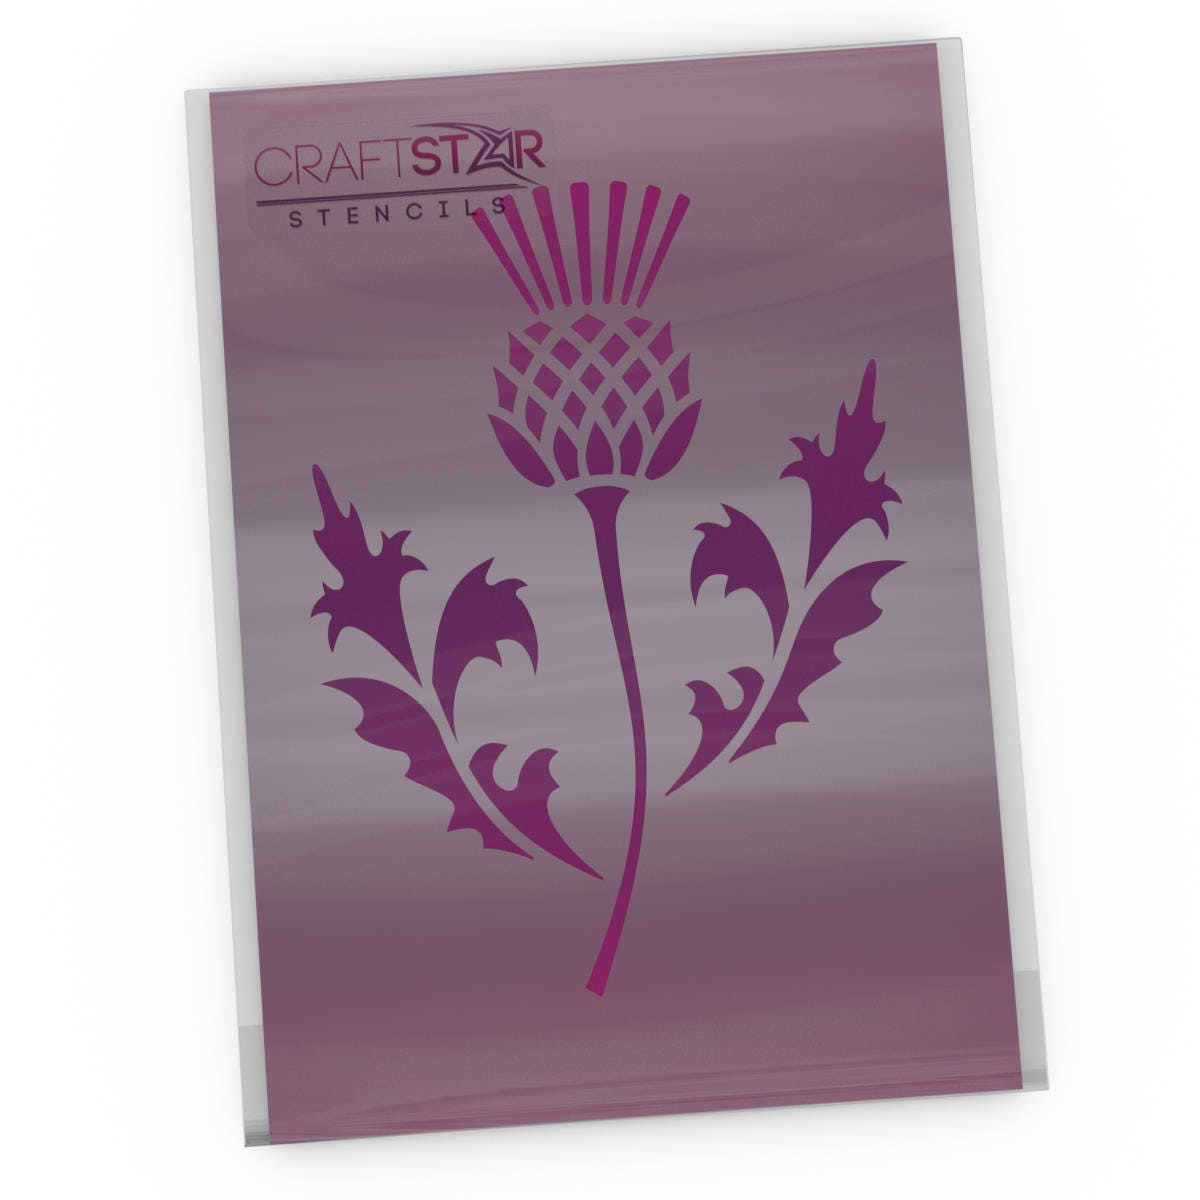 craftstar scottish thistle stencil national emblem of